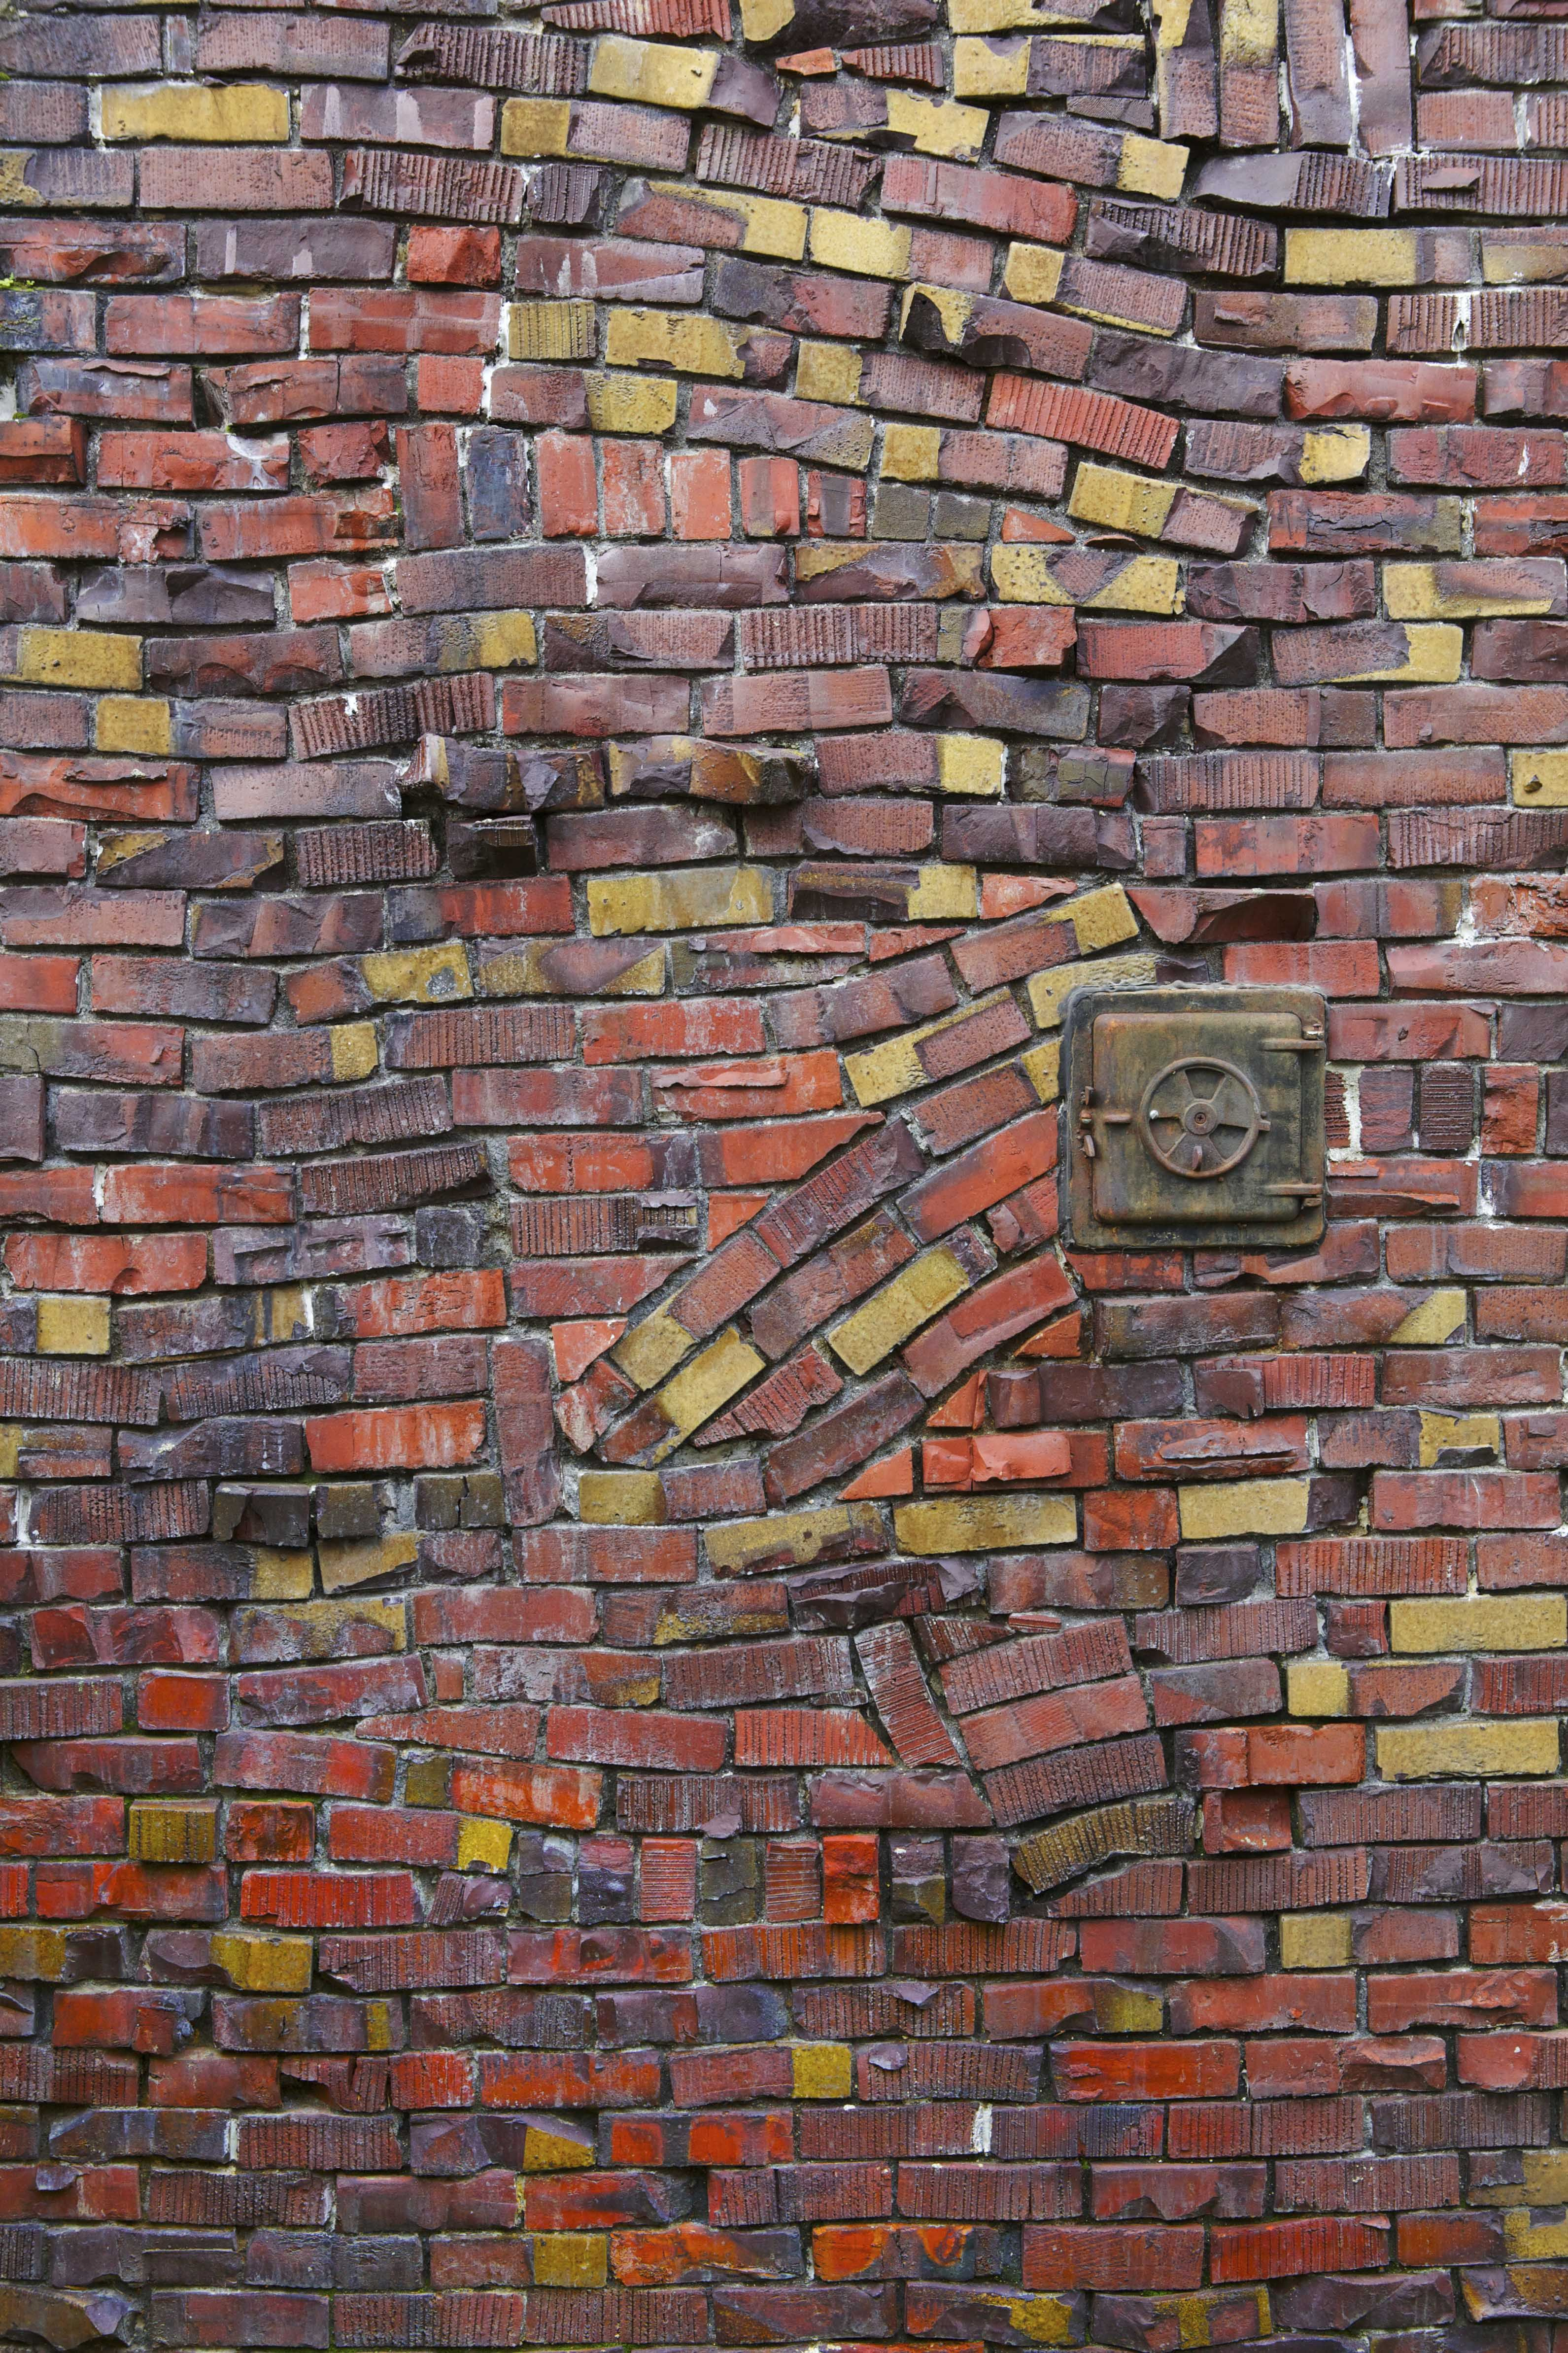 Crazy Clinker Bricks To order this backdrop go to www